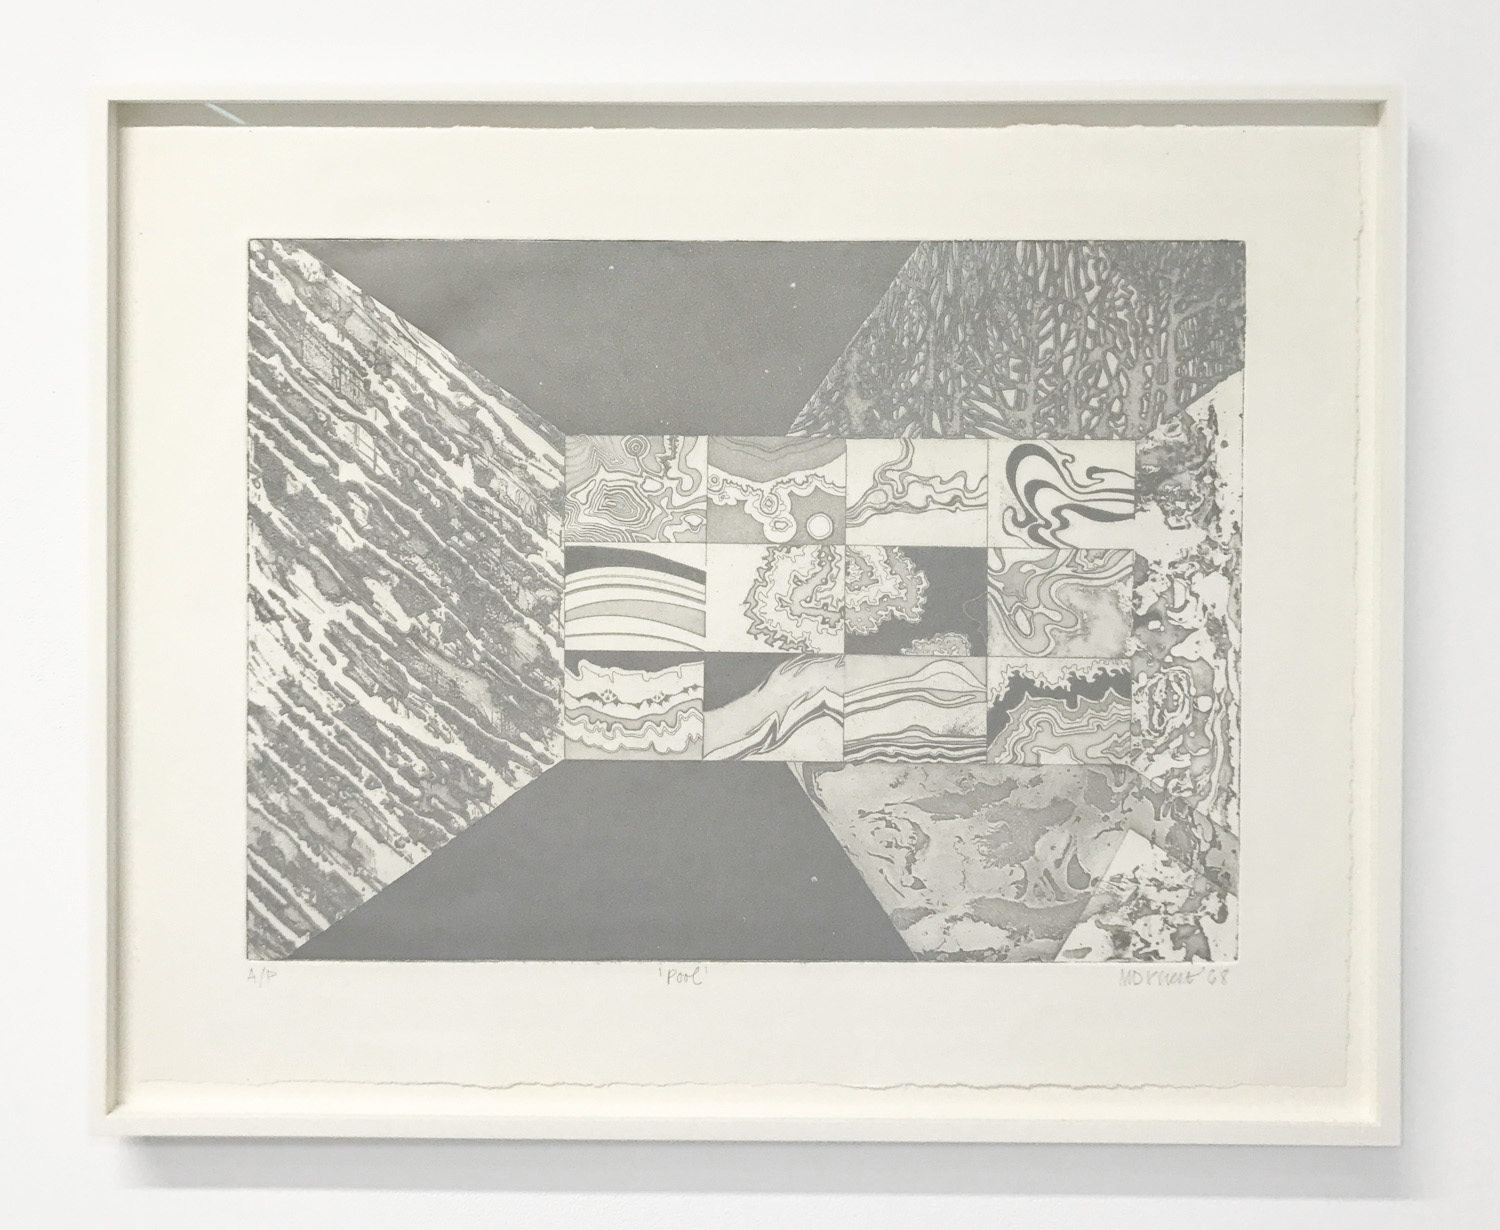 Margaret Priest,  Pool , 1968, paper: 17.75 x 22.5 inches, etching, silver ink, AP